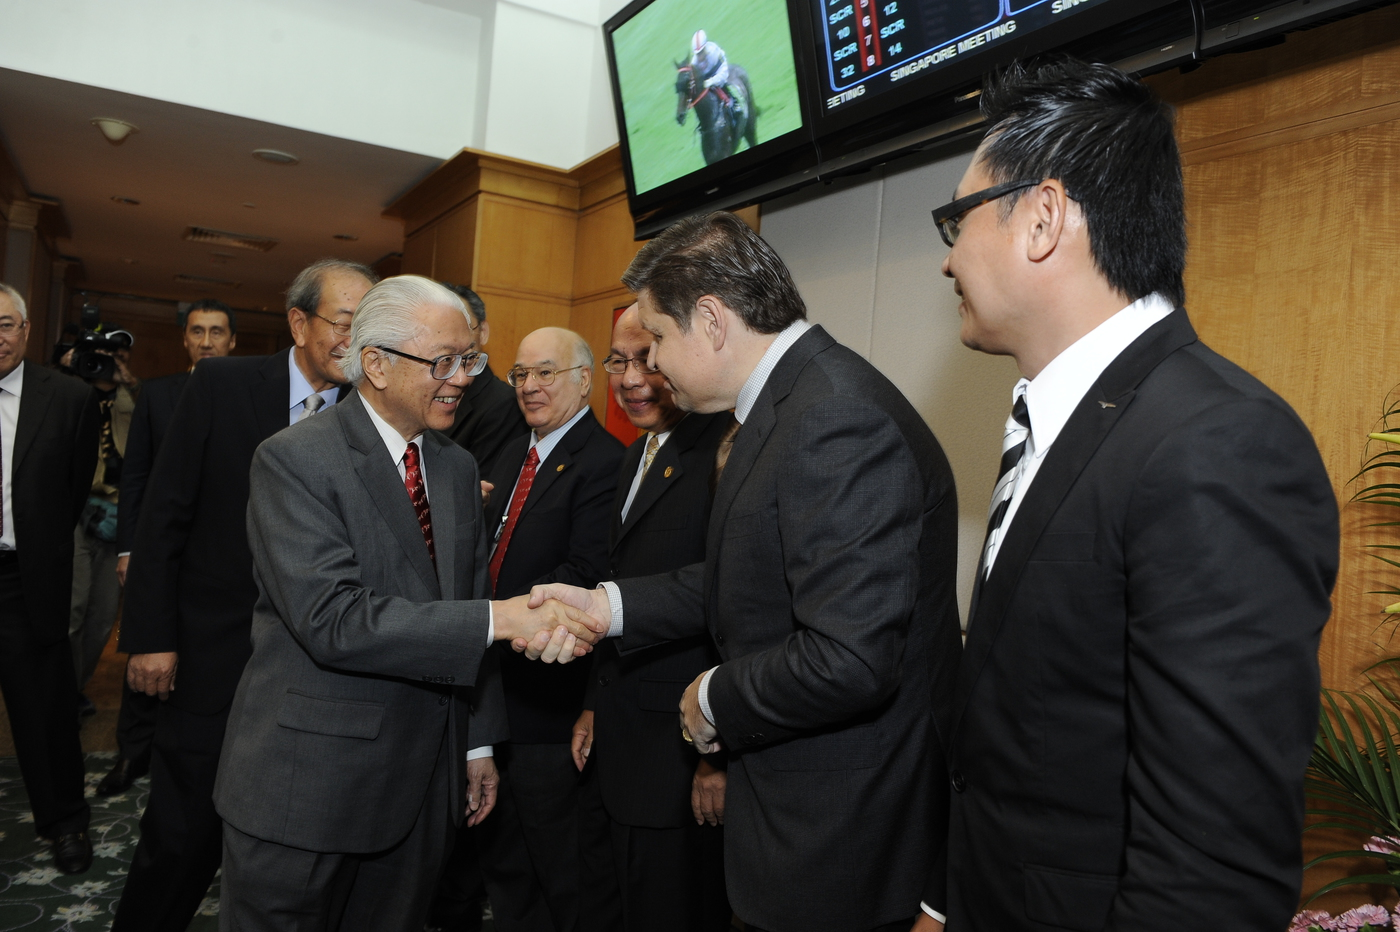 Longines Flat Racing Event: LONGINES SINGAPORE GOLD CUP 2011 raises S$241,136 for the Chaoyang School 11